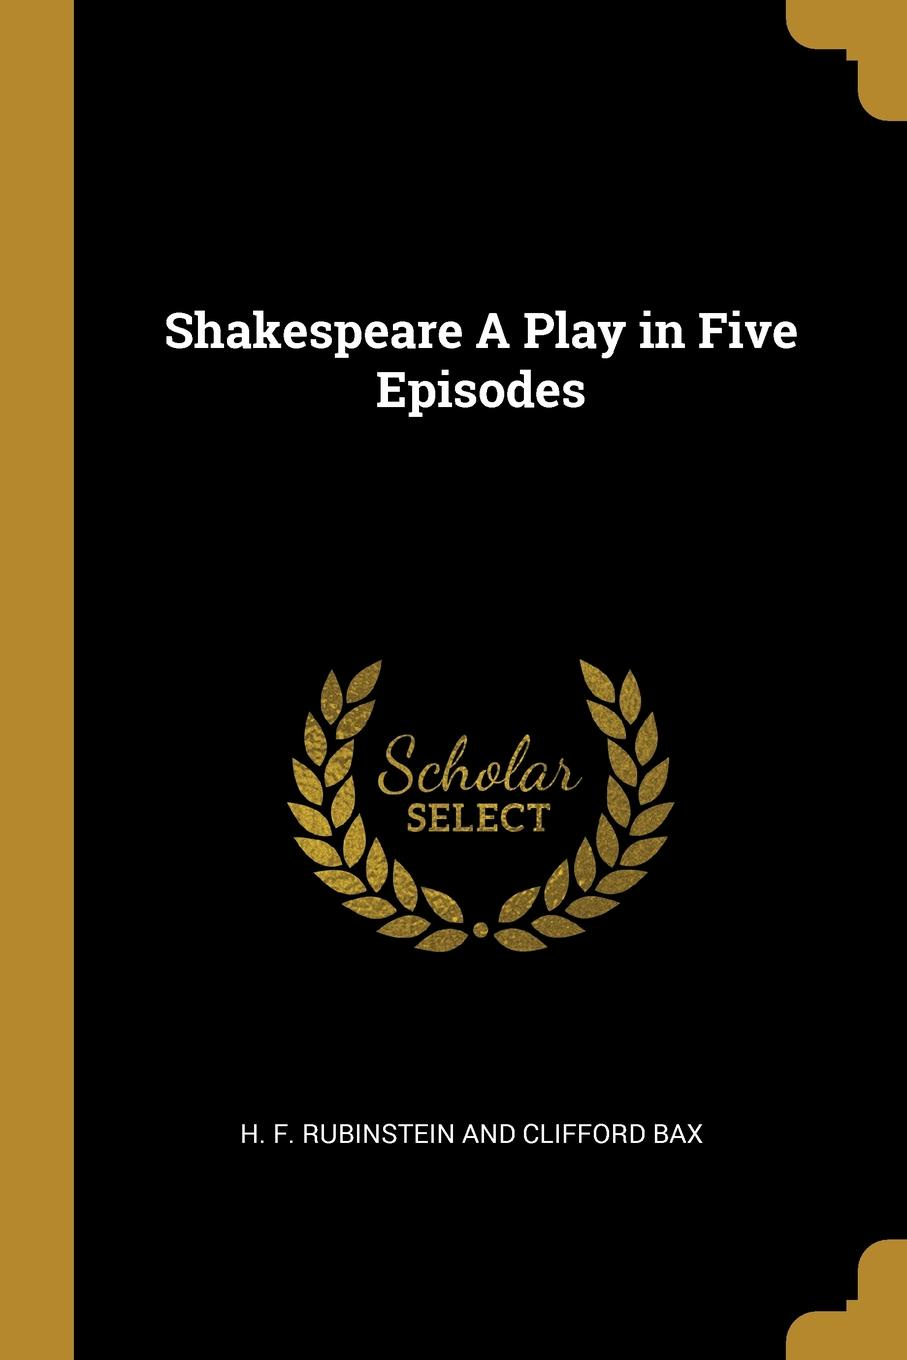 H. F. Rubinstein and Clifford Bax. Shakespeare A Play in Five Episodes